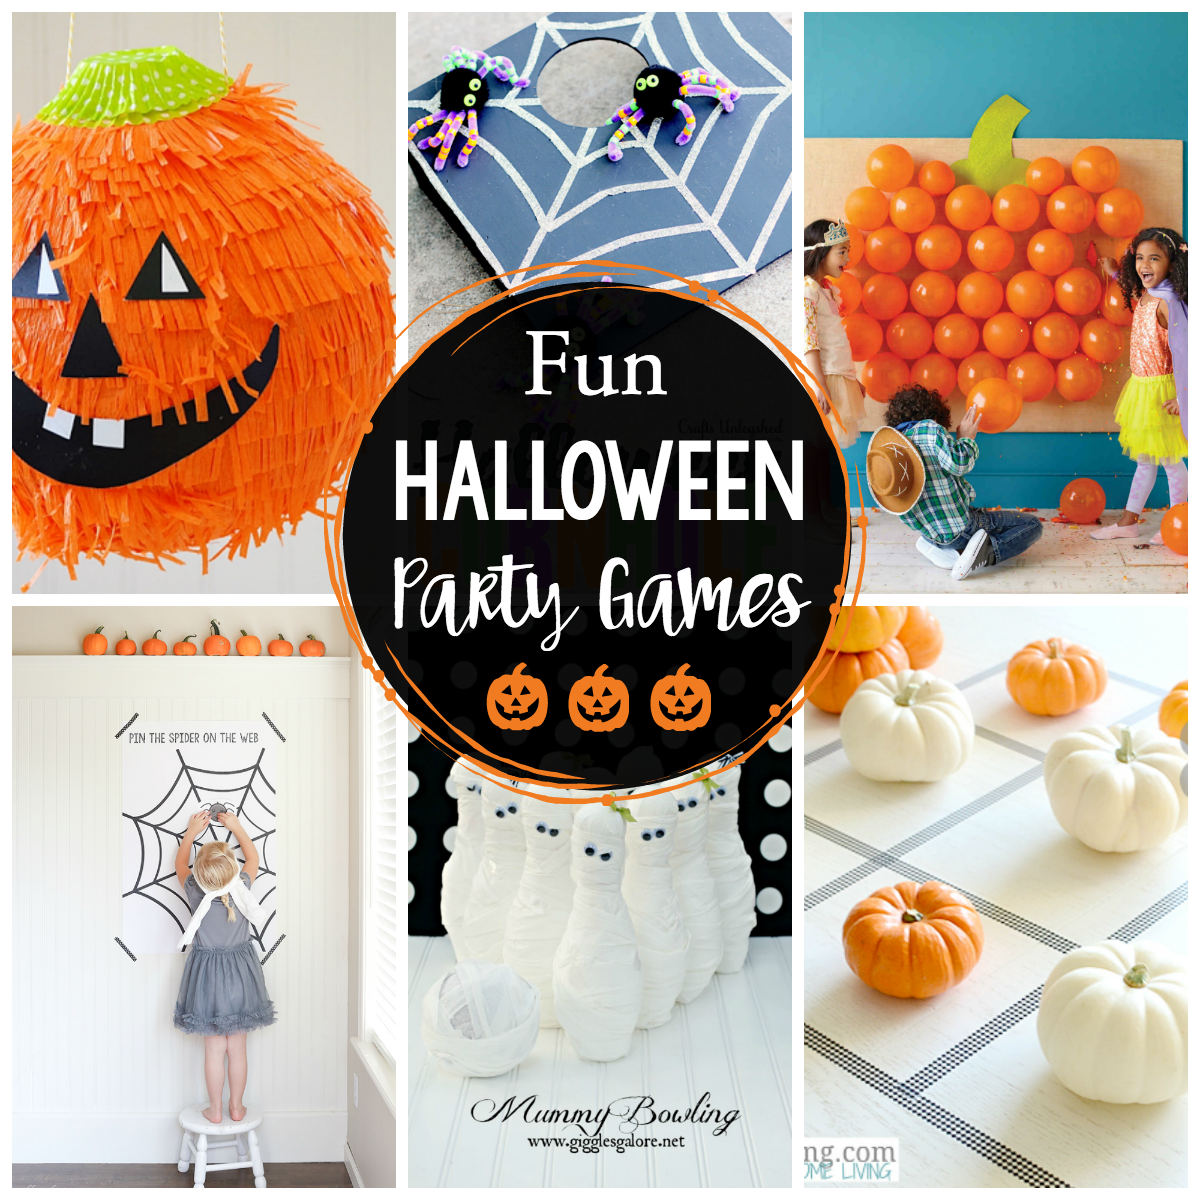 25 fun halloween party games – fun-squared